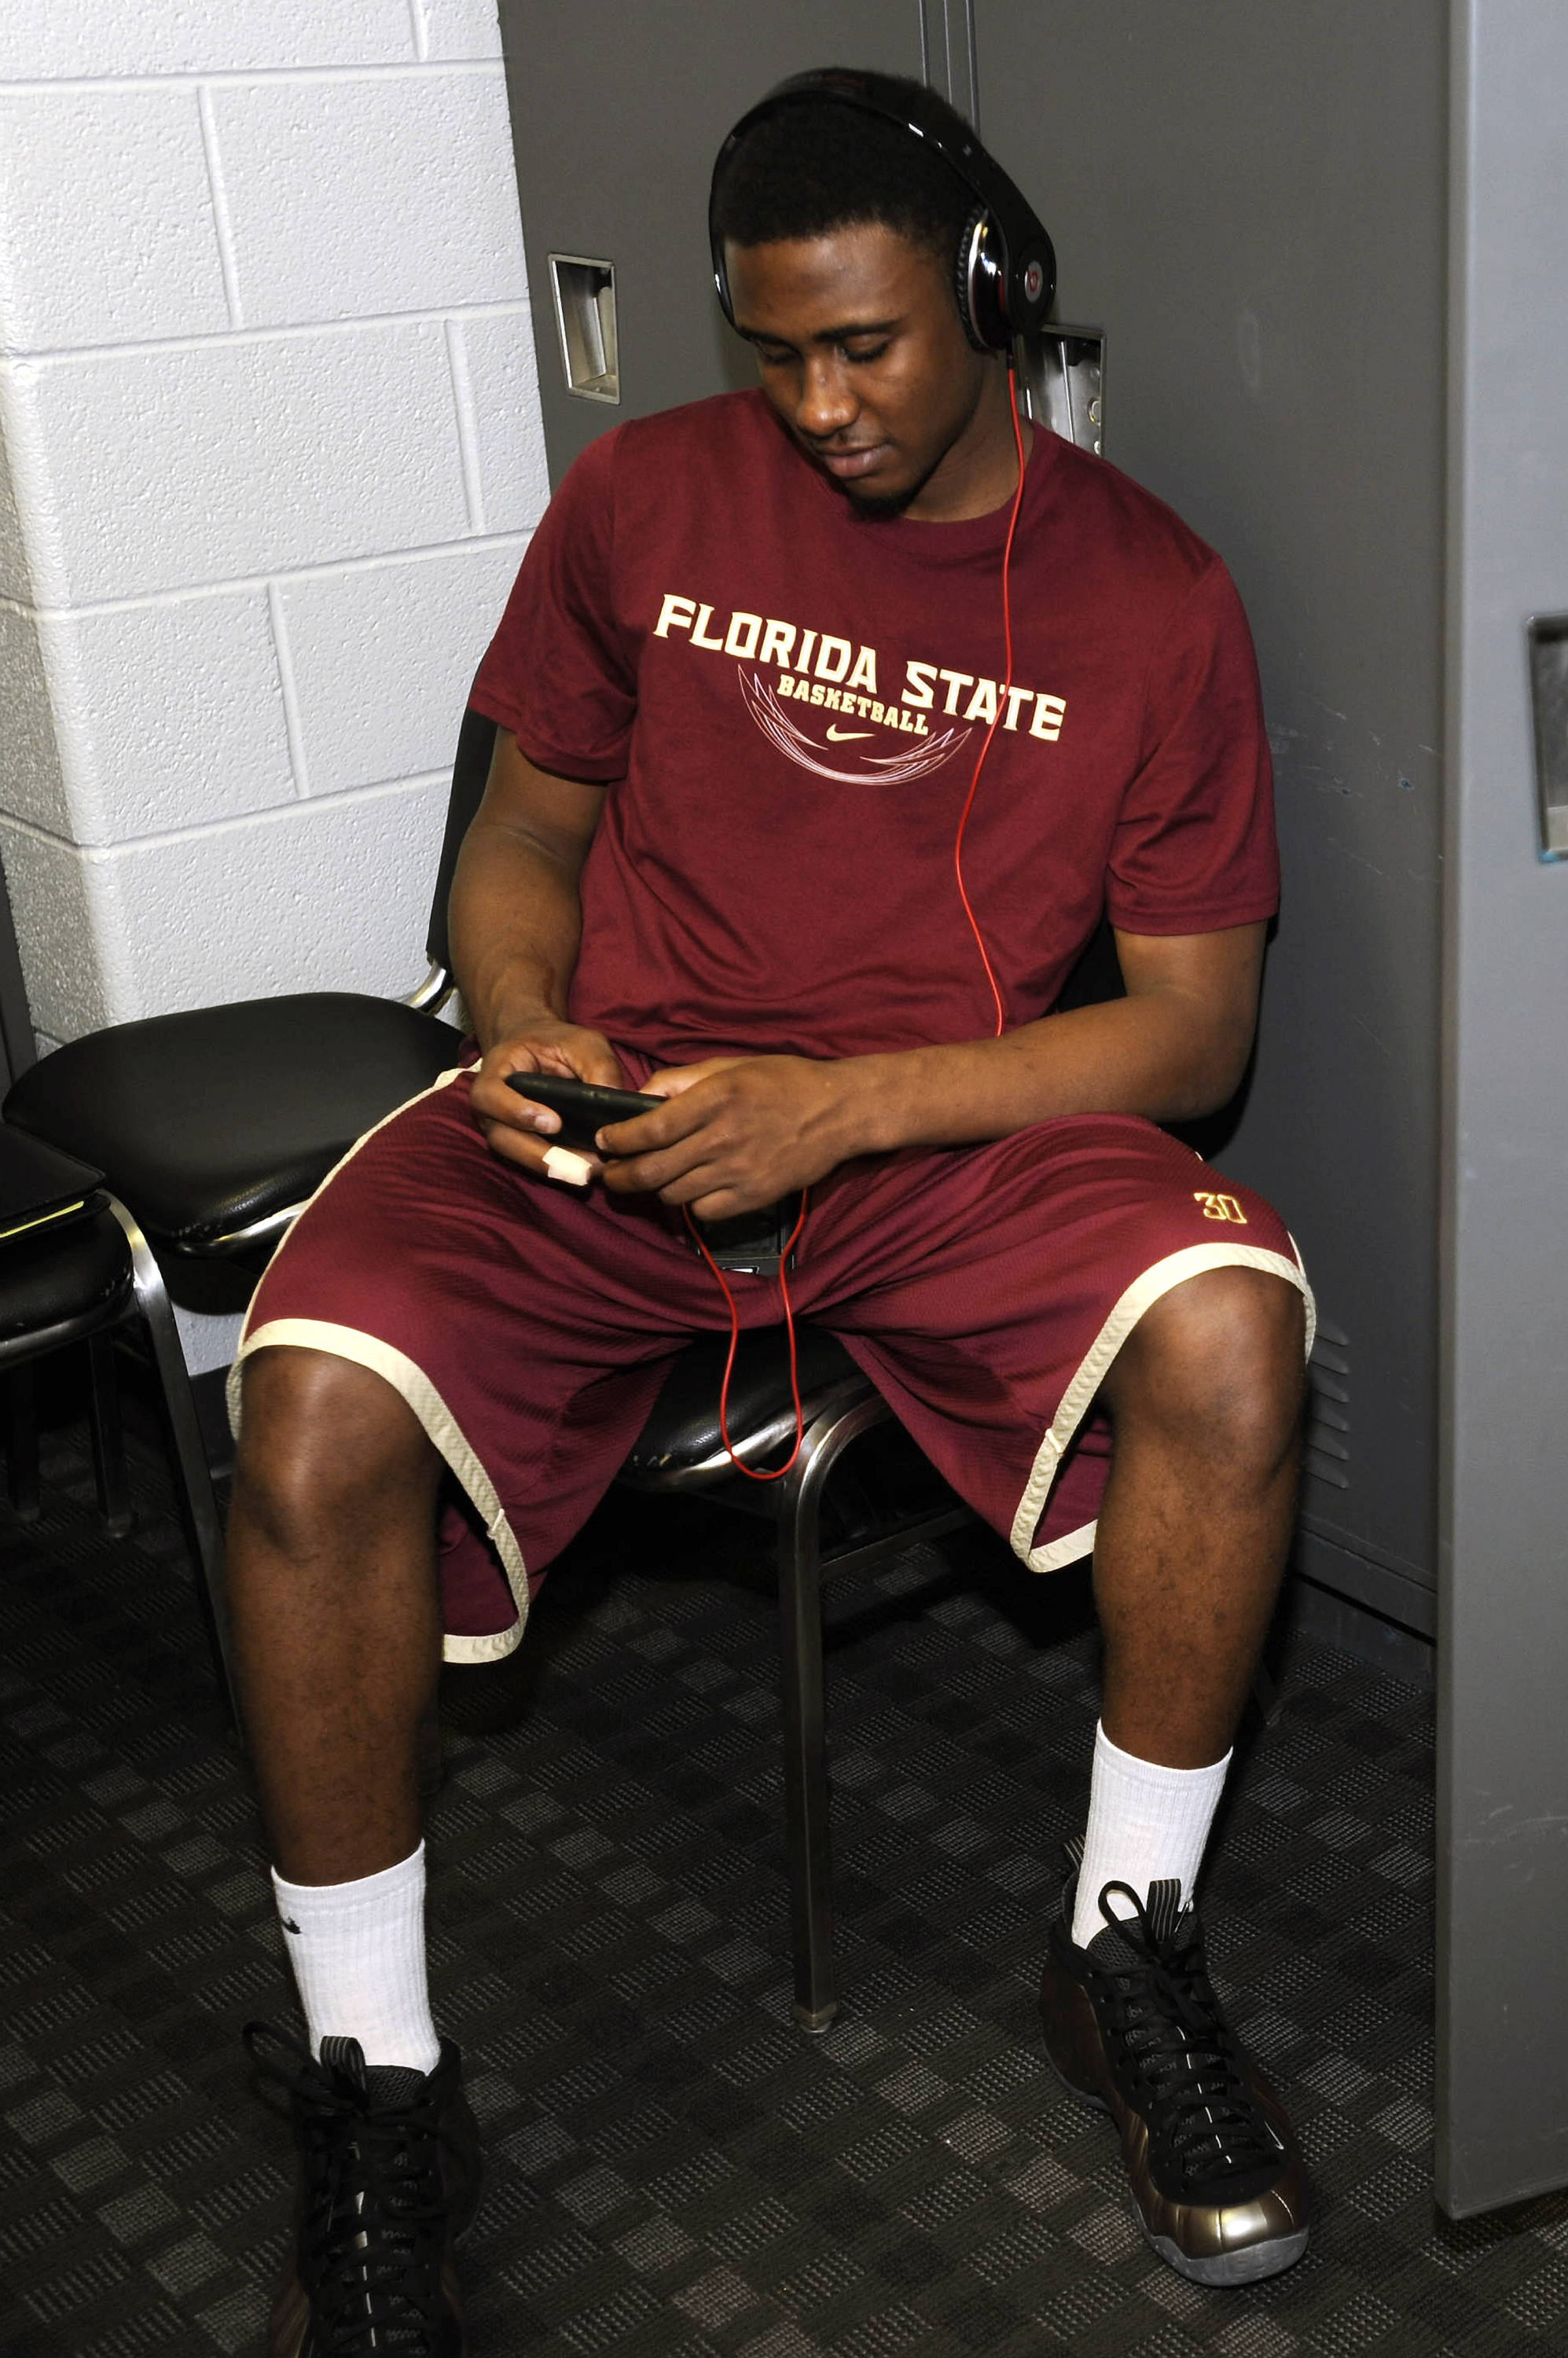 Ian Miller listens to some music before practice